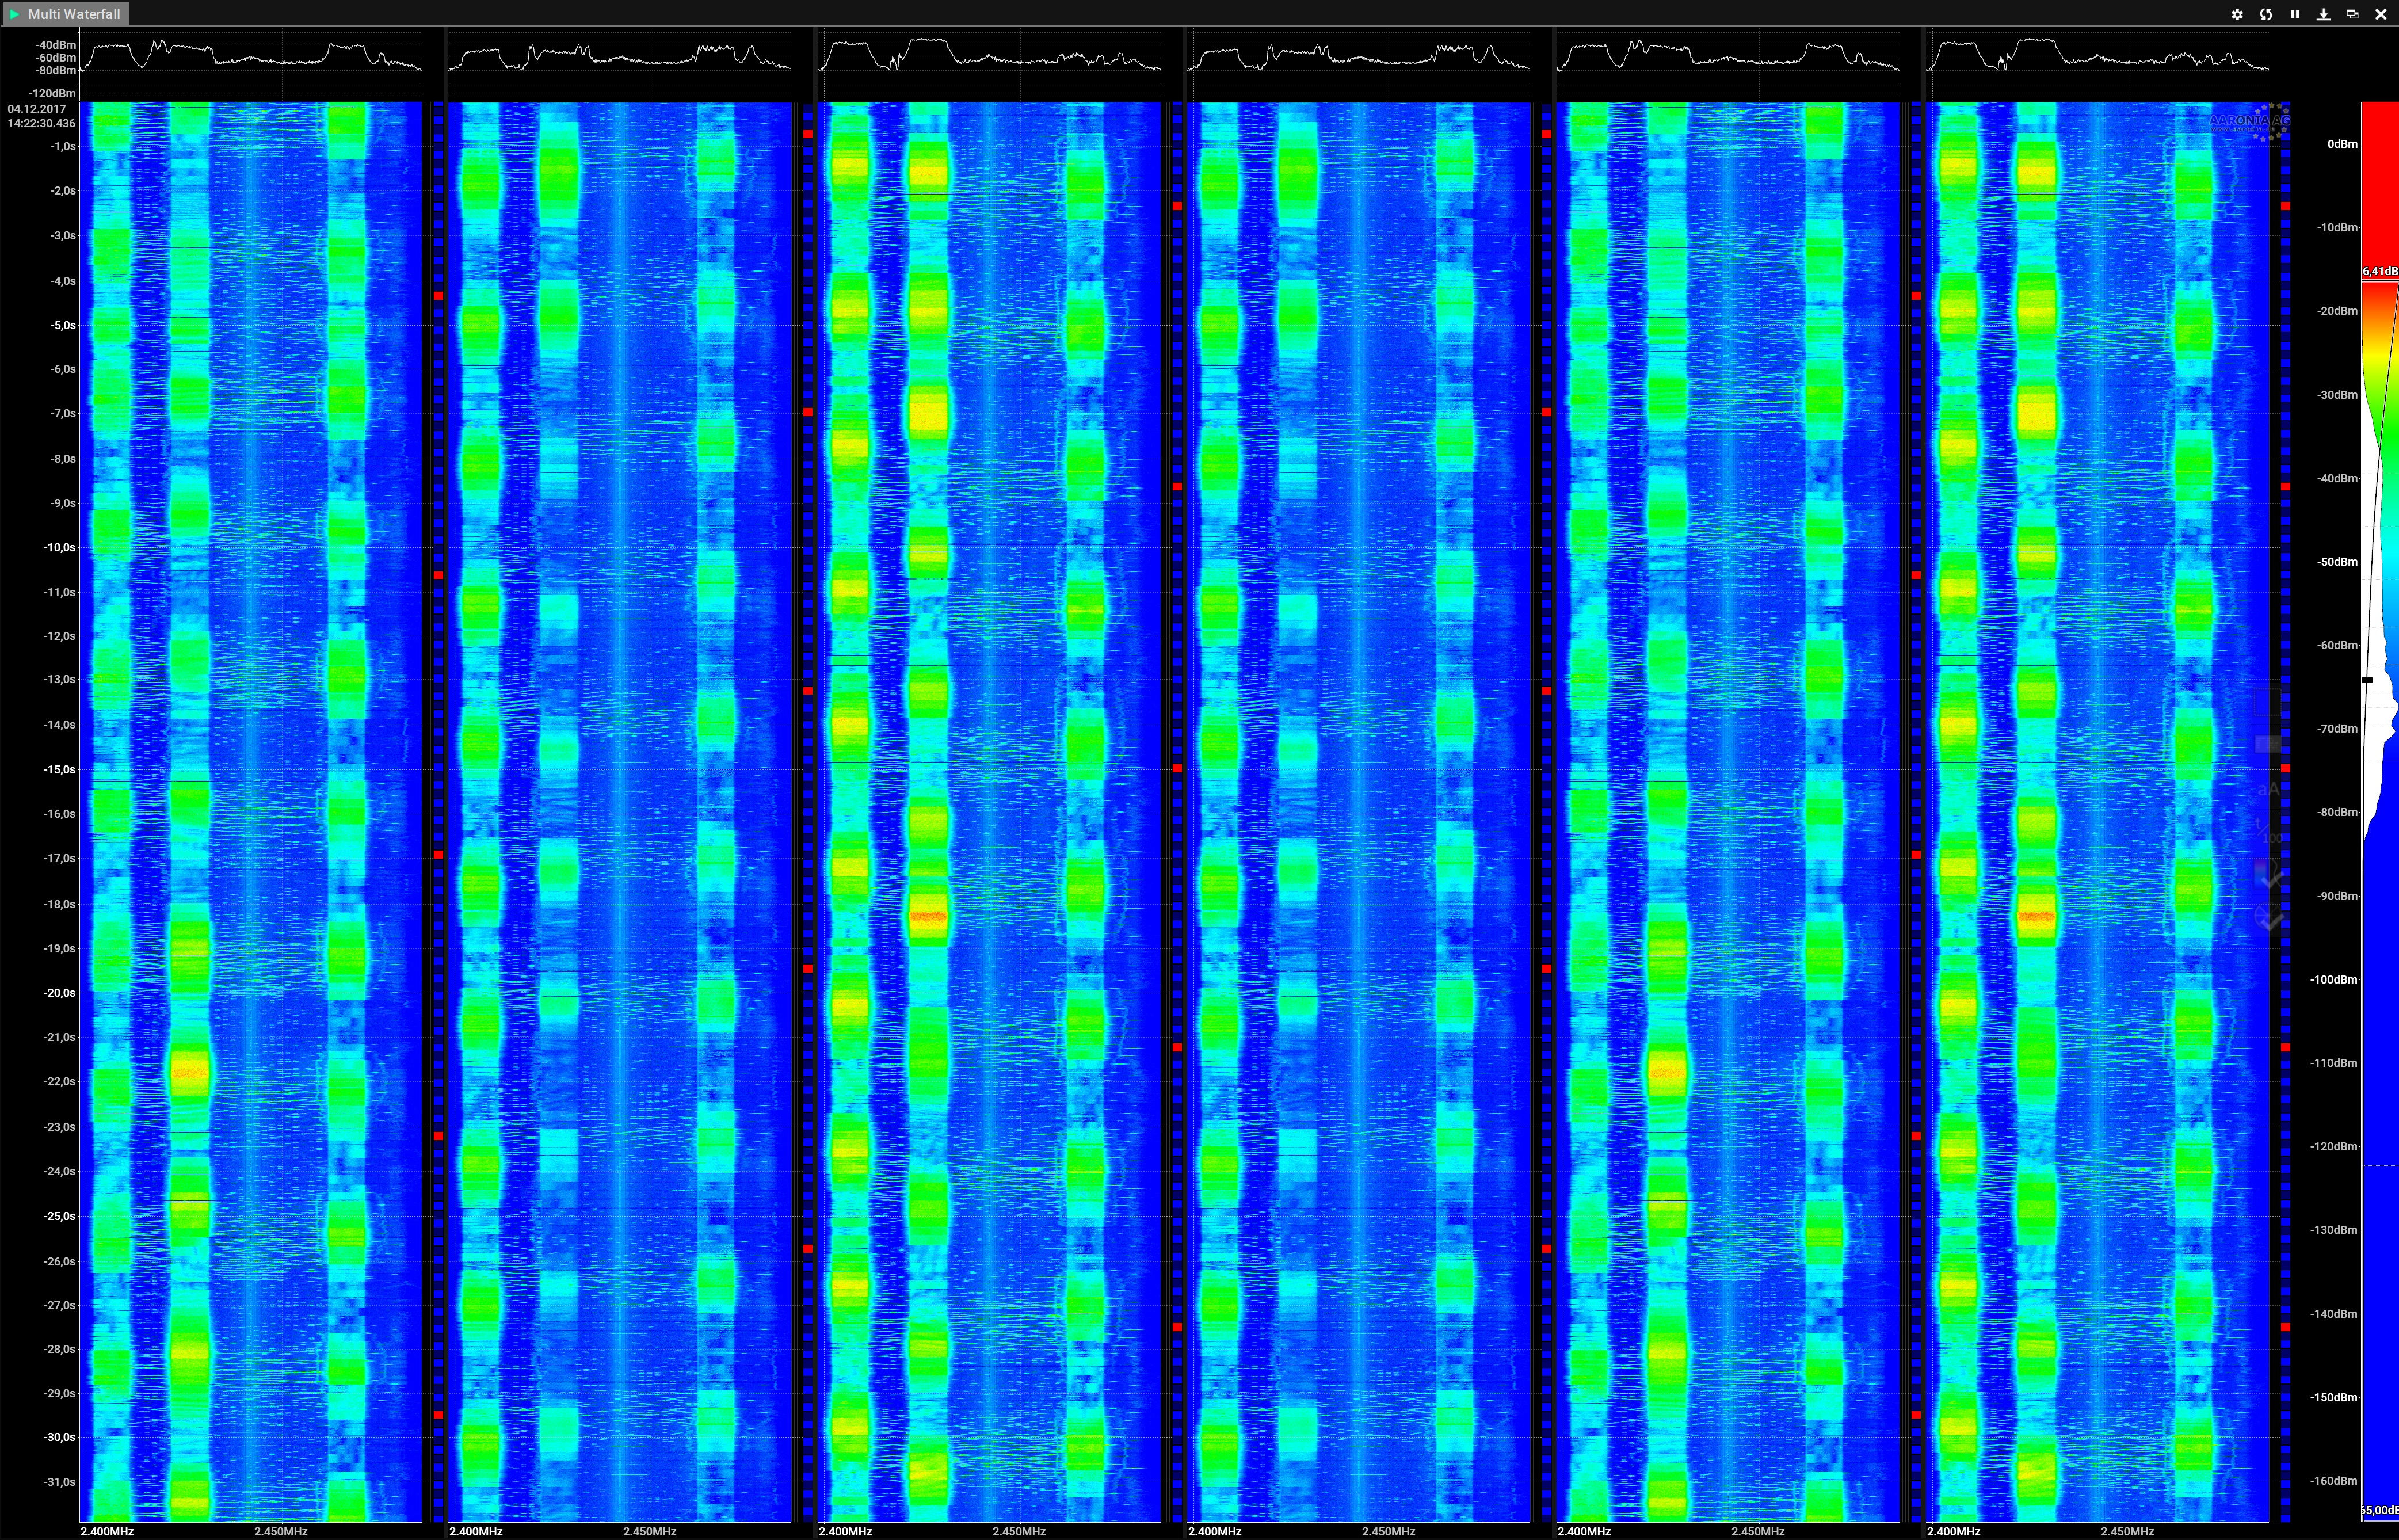 Comparing multiple Spectrum side by side